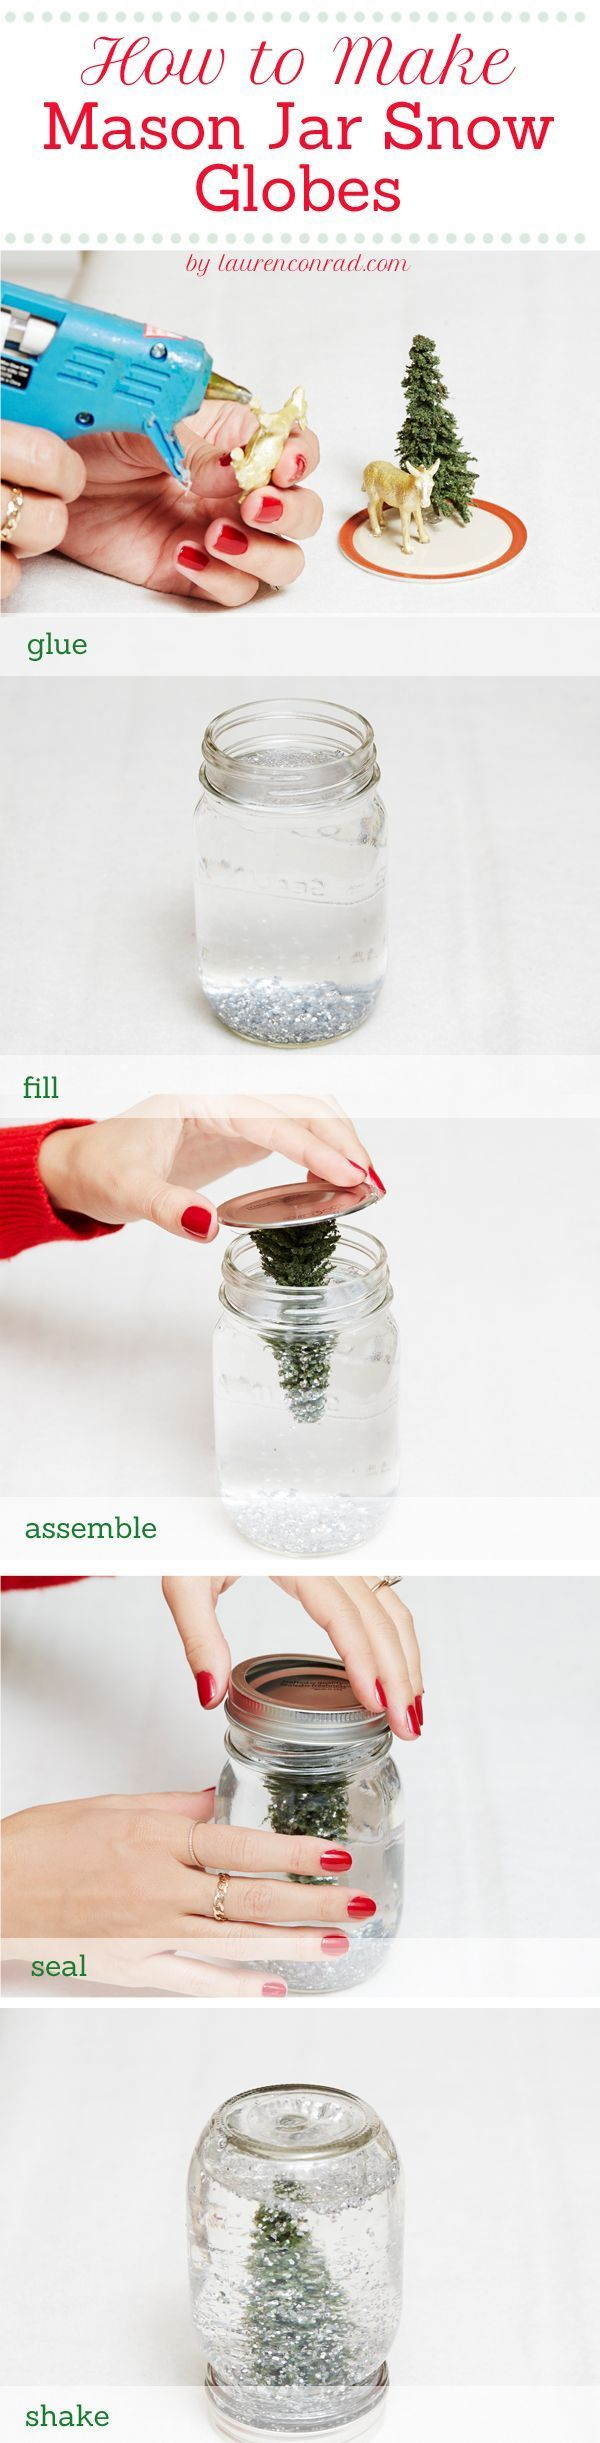 Deck The Halls: Diy Mason Jar Snow Globes